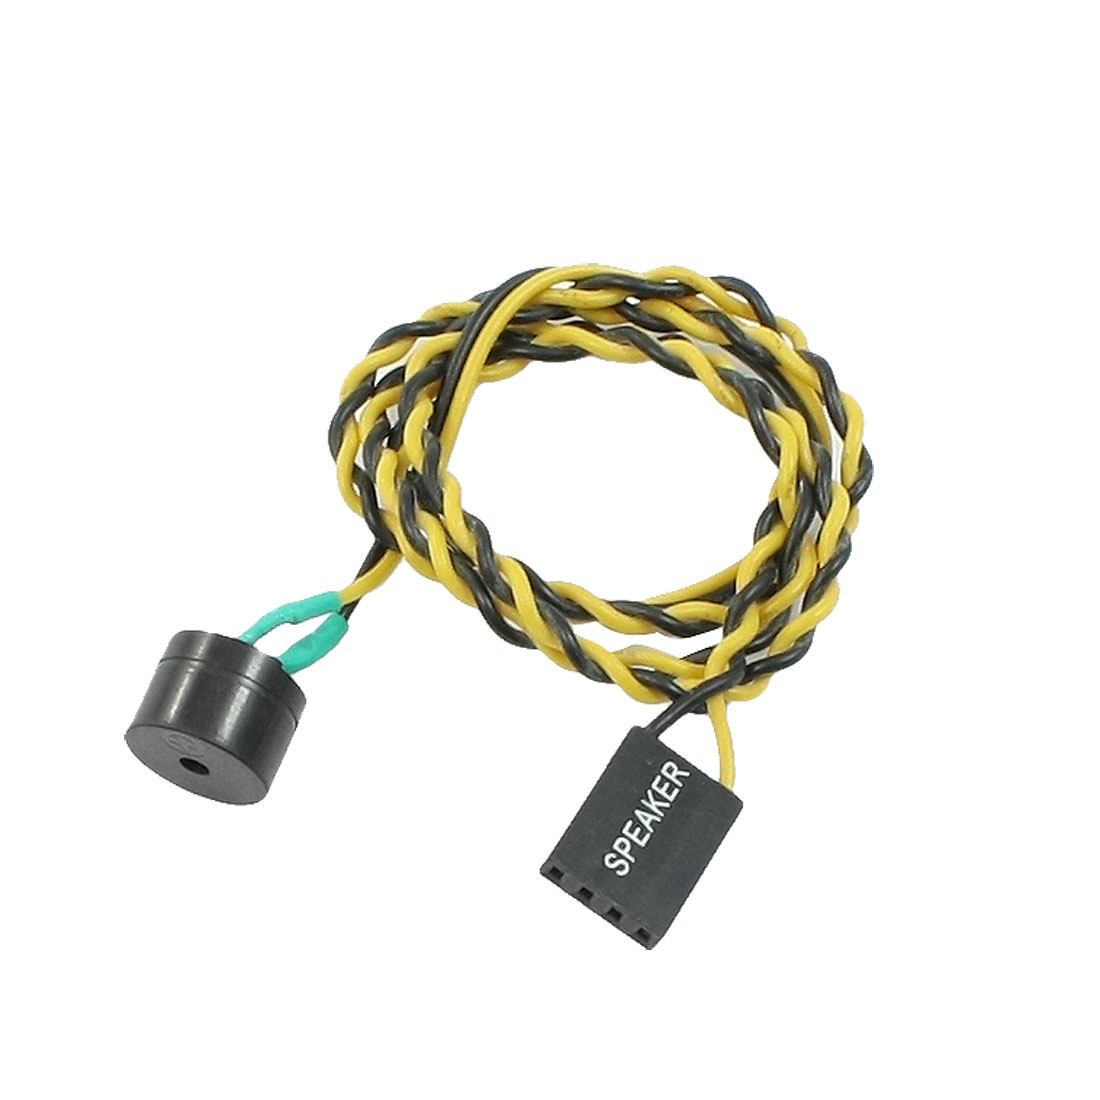 "19.7"" Length ATX Power On Computer Supply Reset Switch Cable Yellow Black"